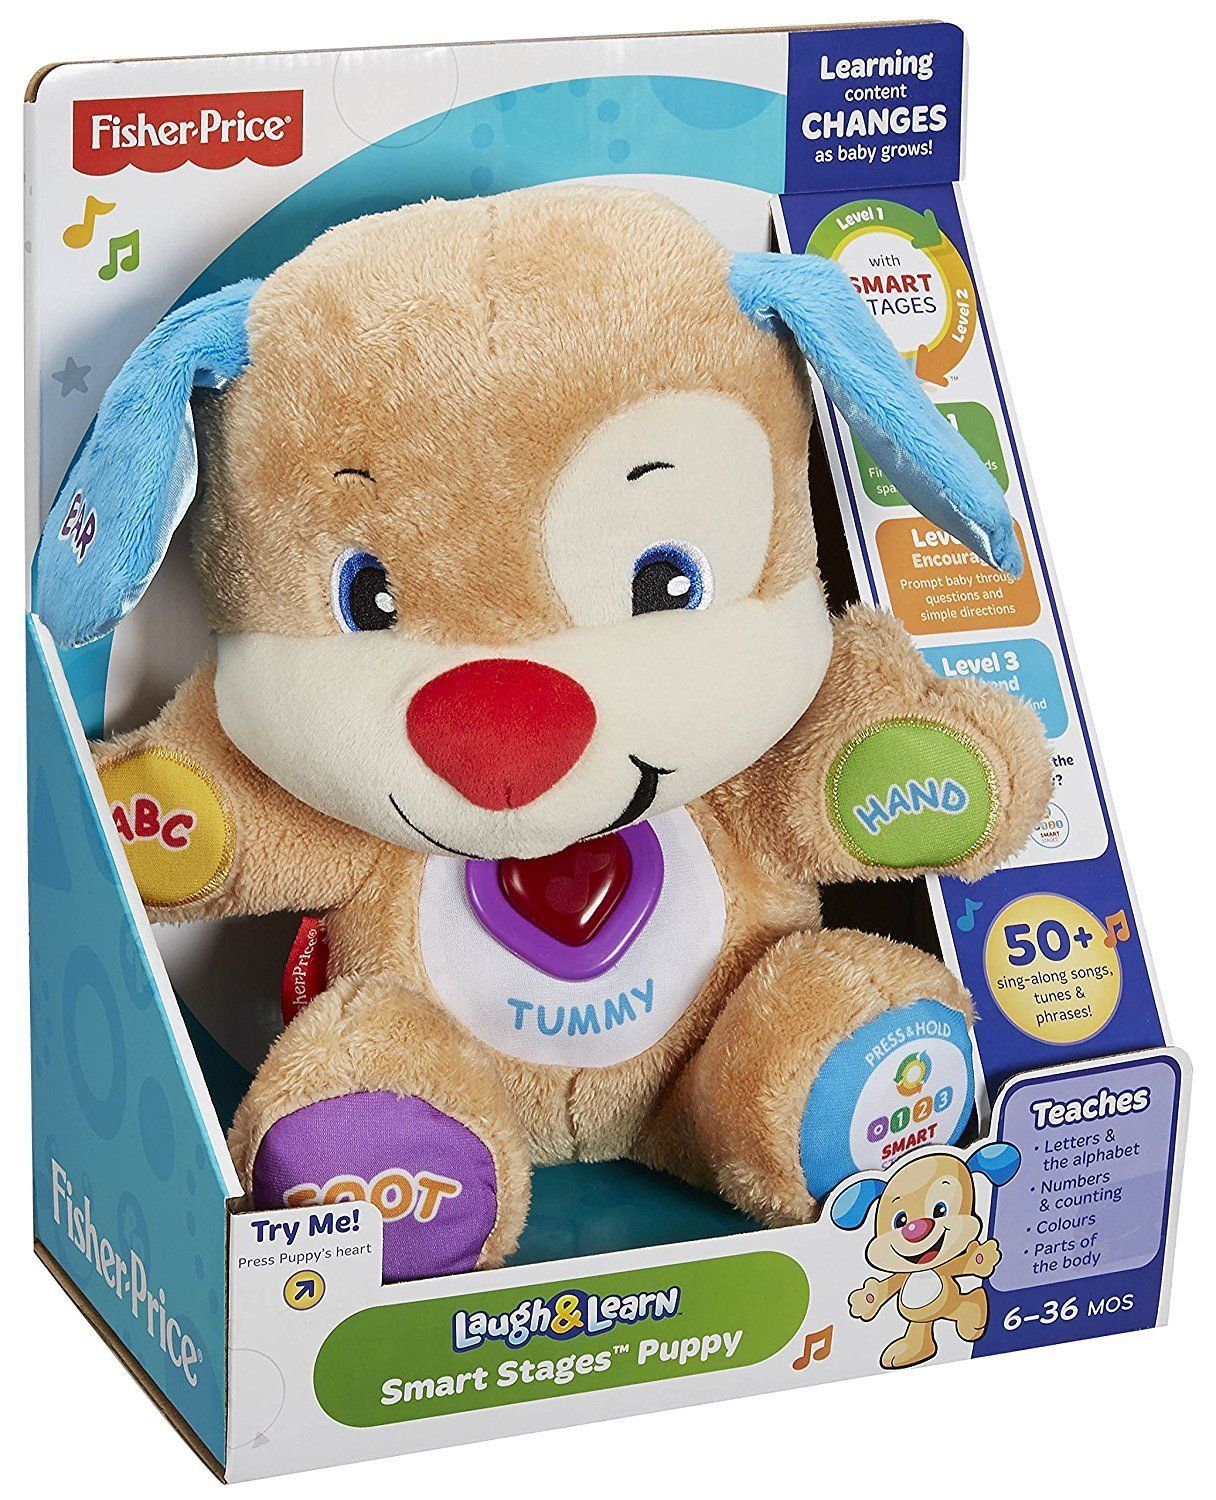 Fisher-Price Laugh & Learn Smart Stages Puppy - Walmart.com